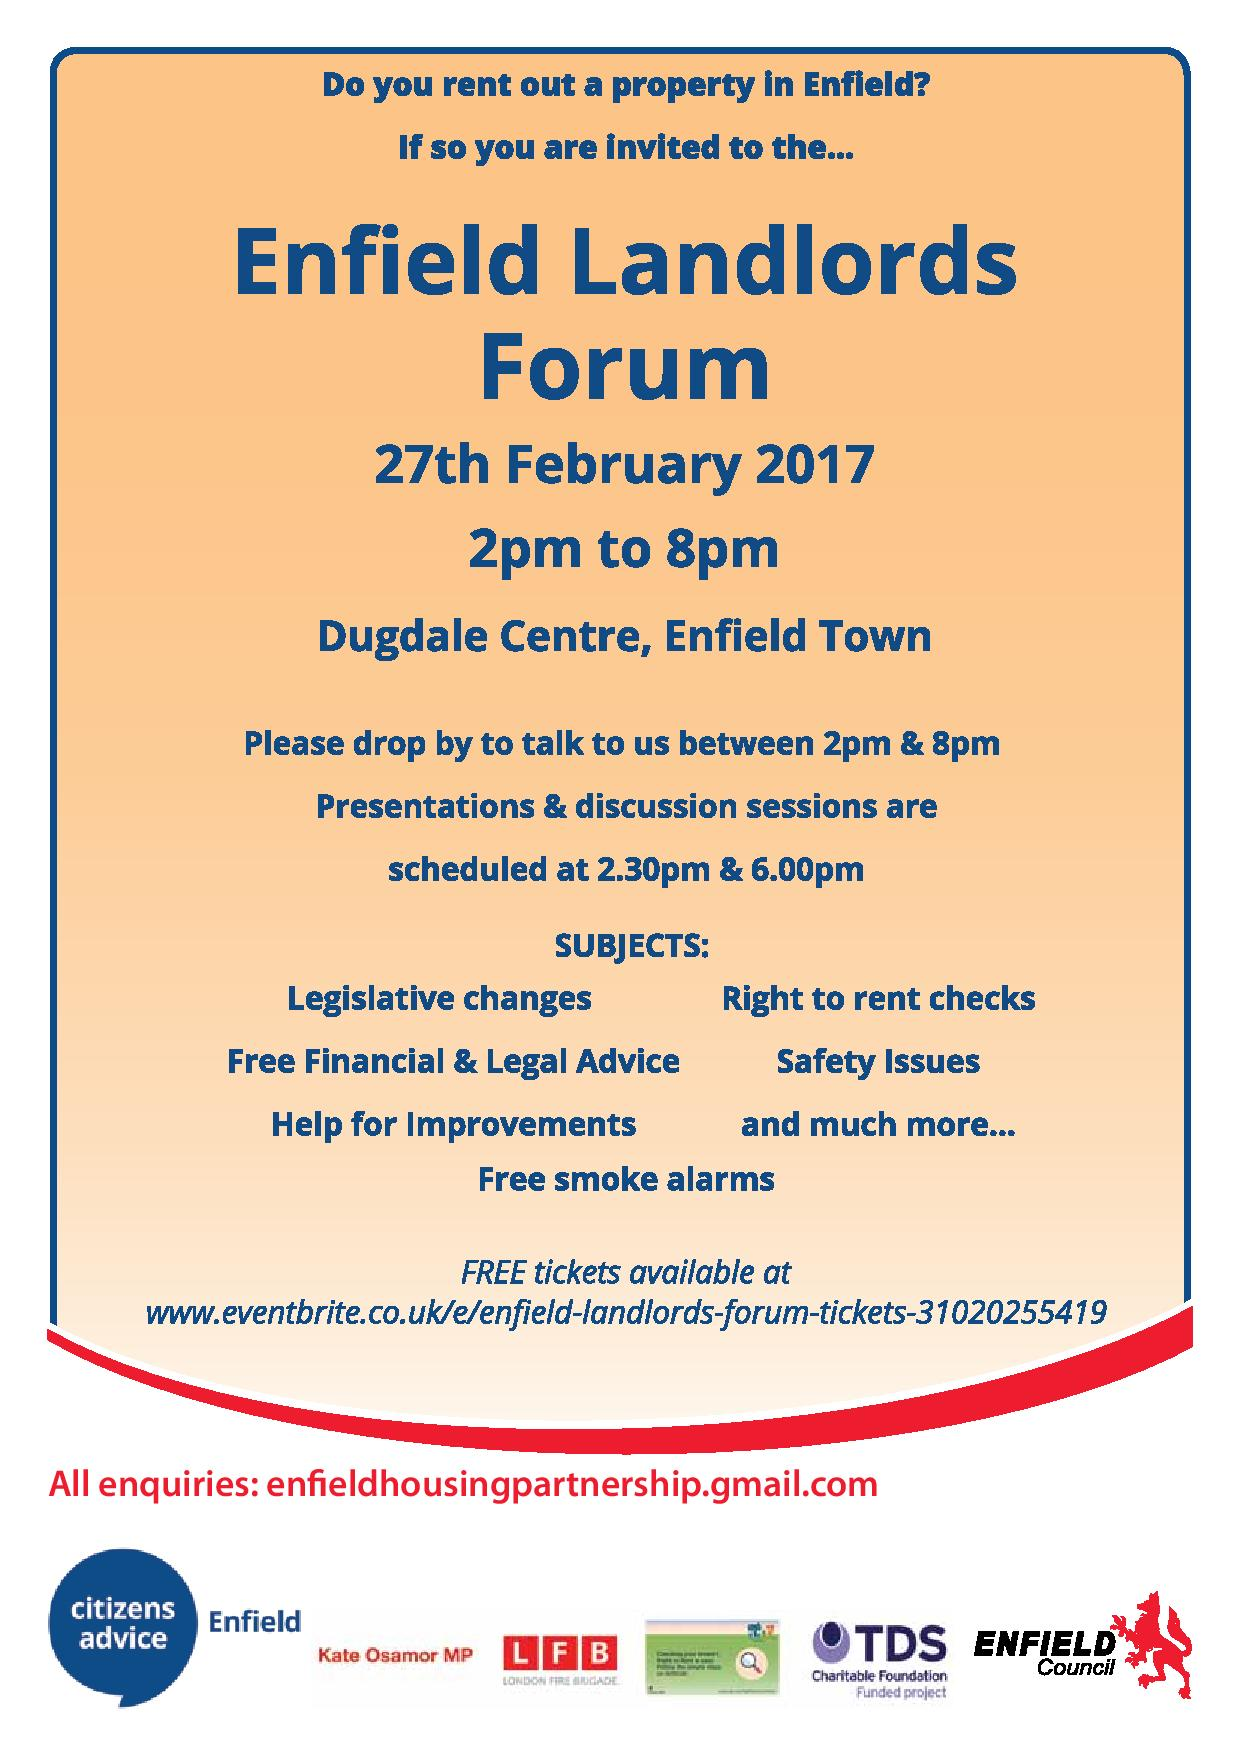 enfield_landlord_forum_advert-page-001.jpg